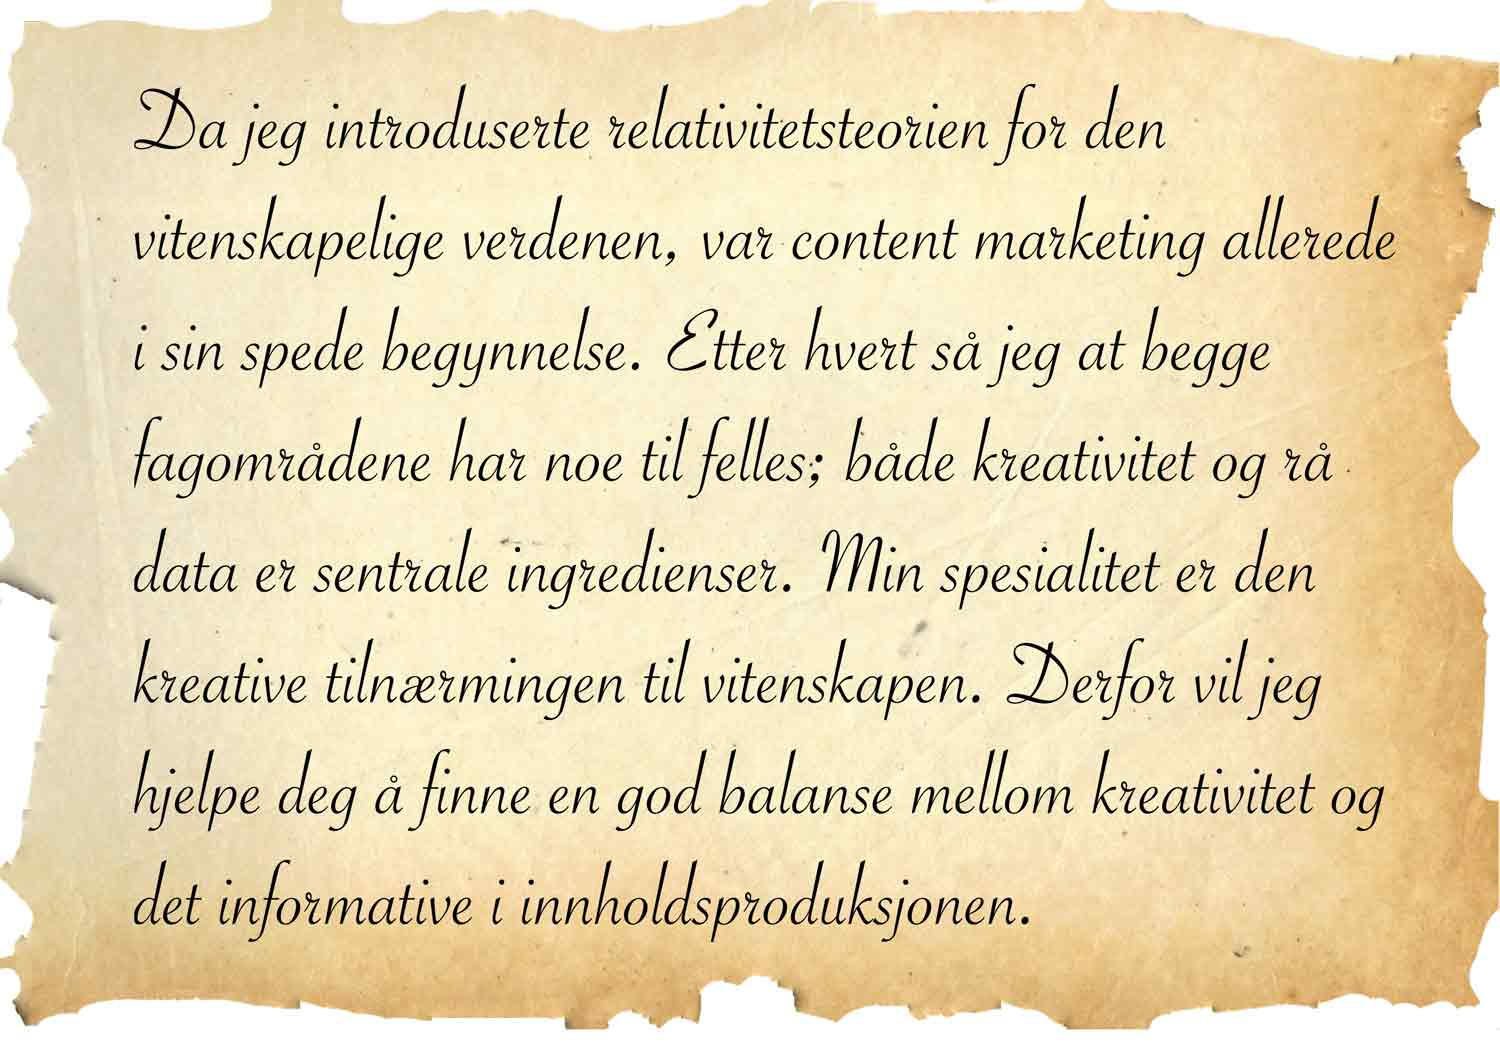 Einstein sitat om relativitetsteorien og content marketing